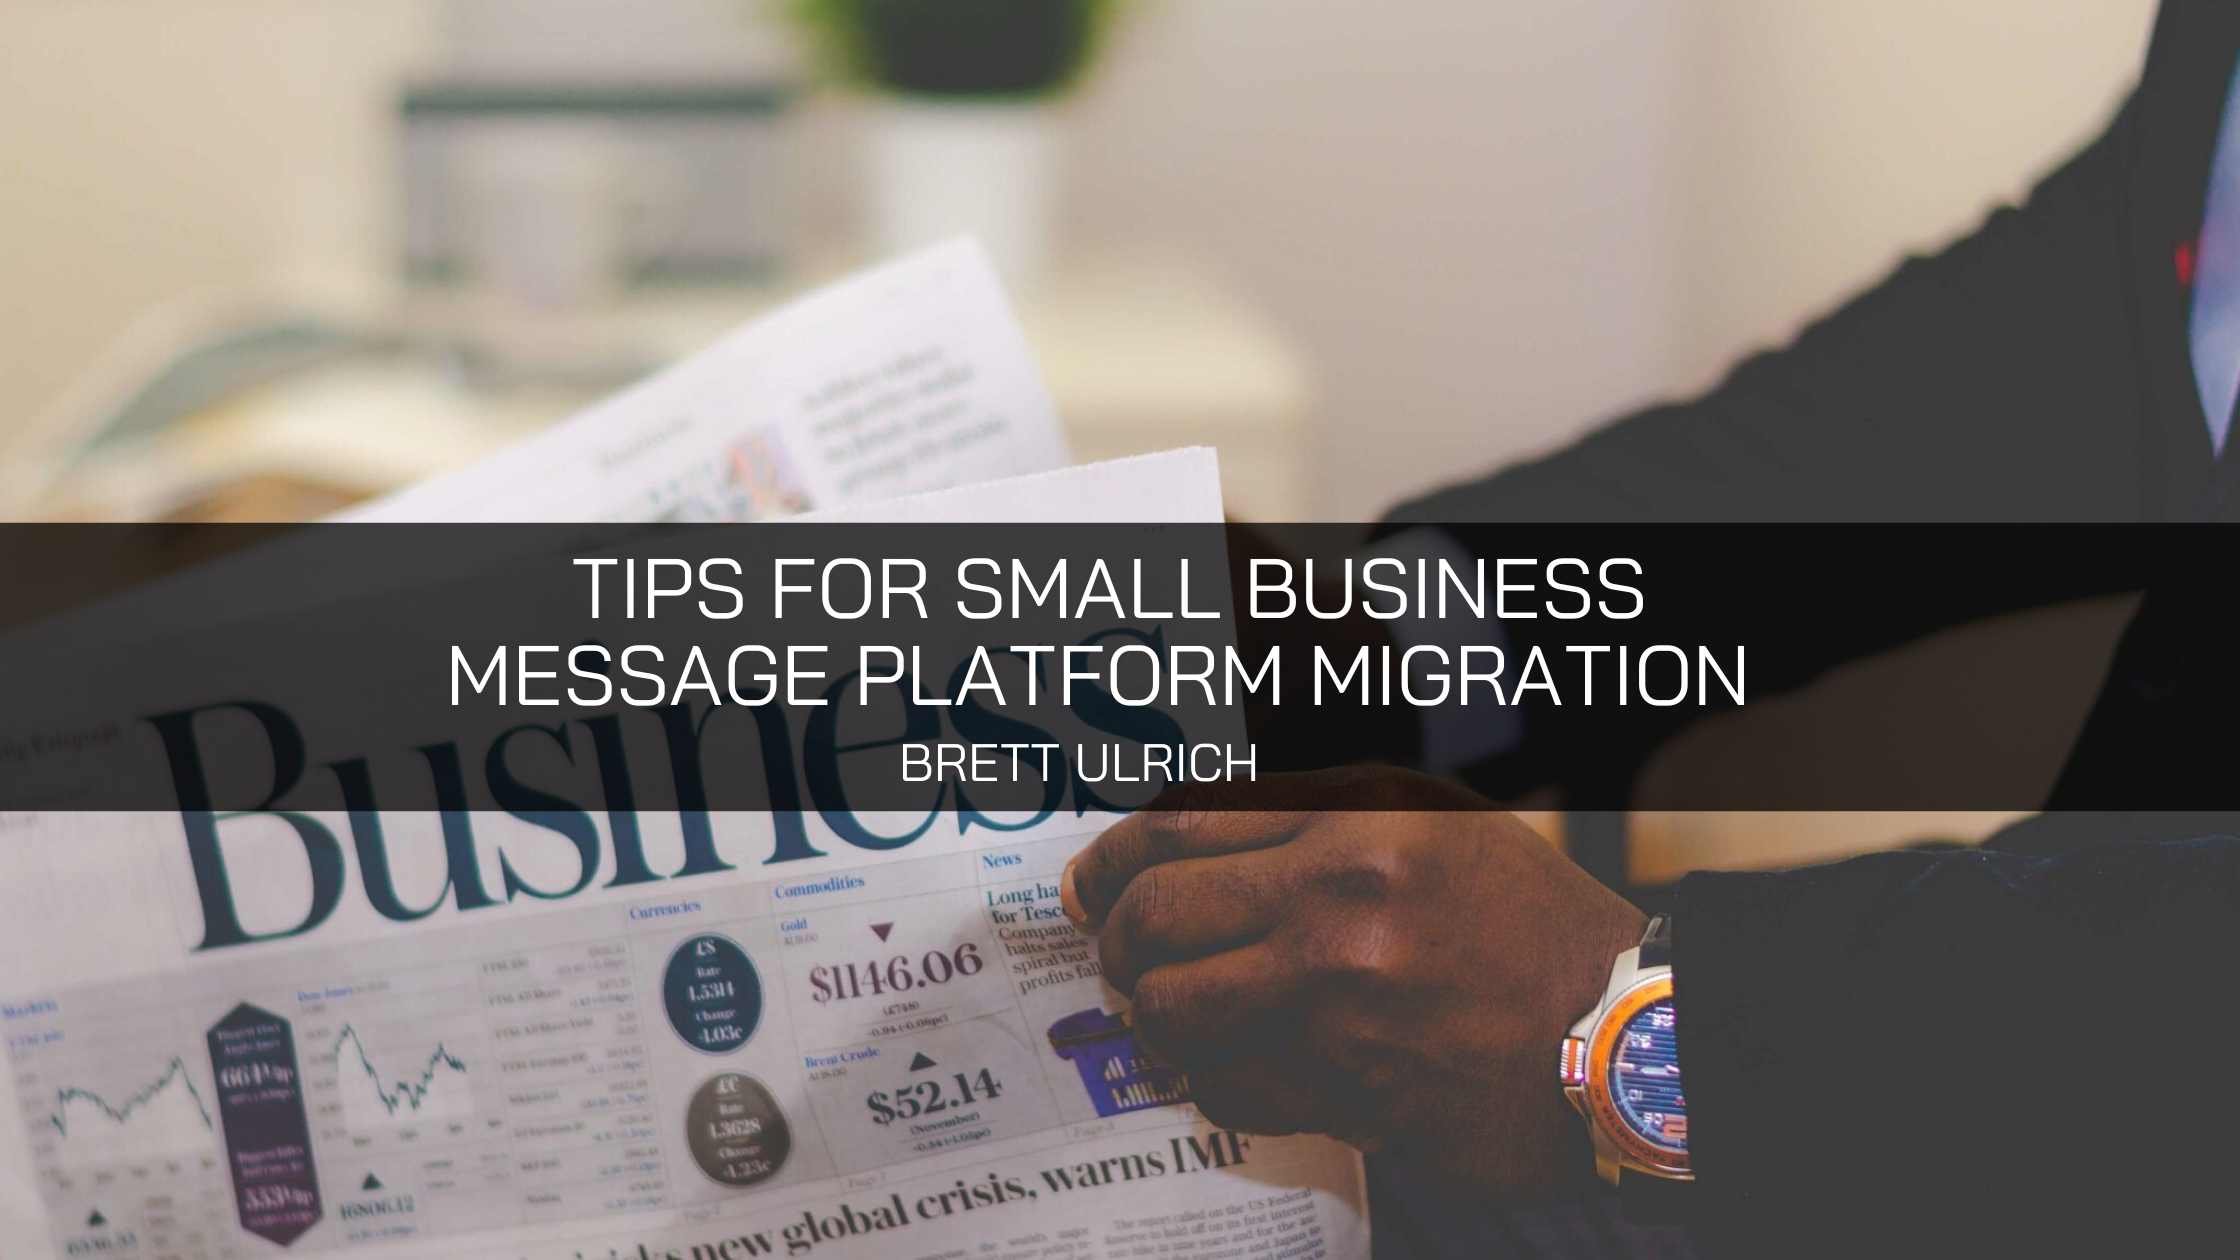 Brett Ulrich Provides Tips for Small Business Message Platform Migration